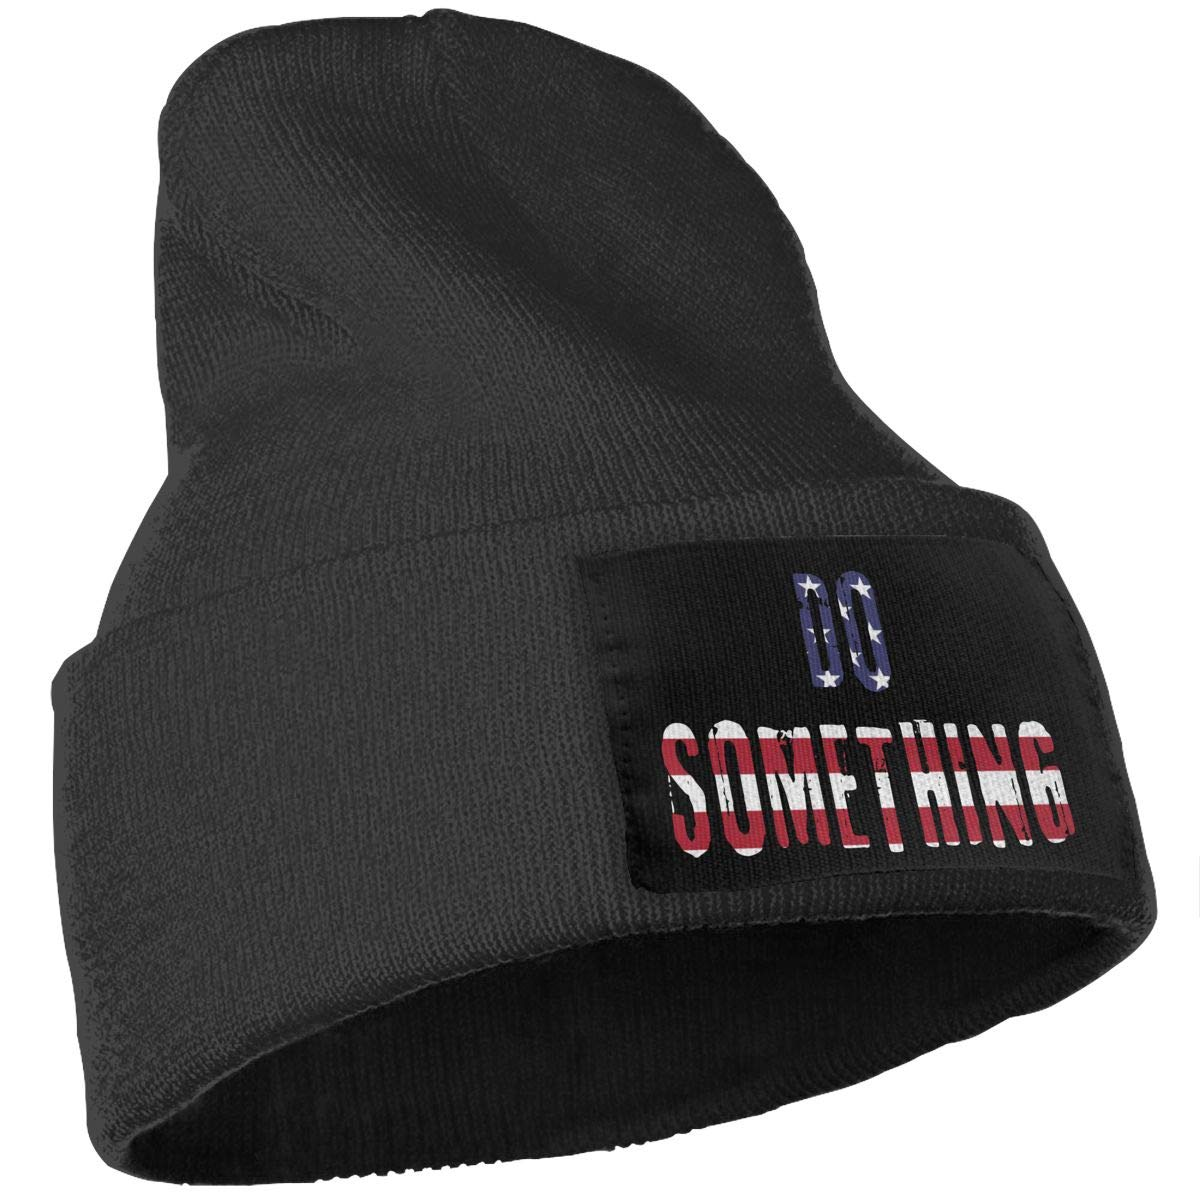 COLLJL-8 Men /& Women DO Something American Flag Outdoor Fashion Knit Beanies Hat Soft Winter Knit Caps